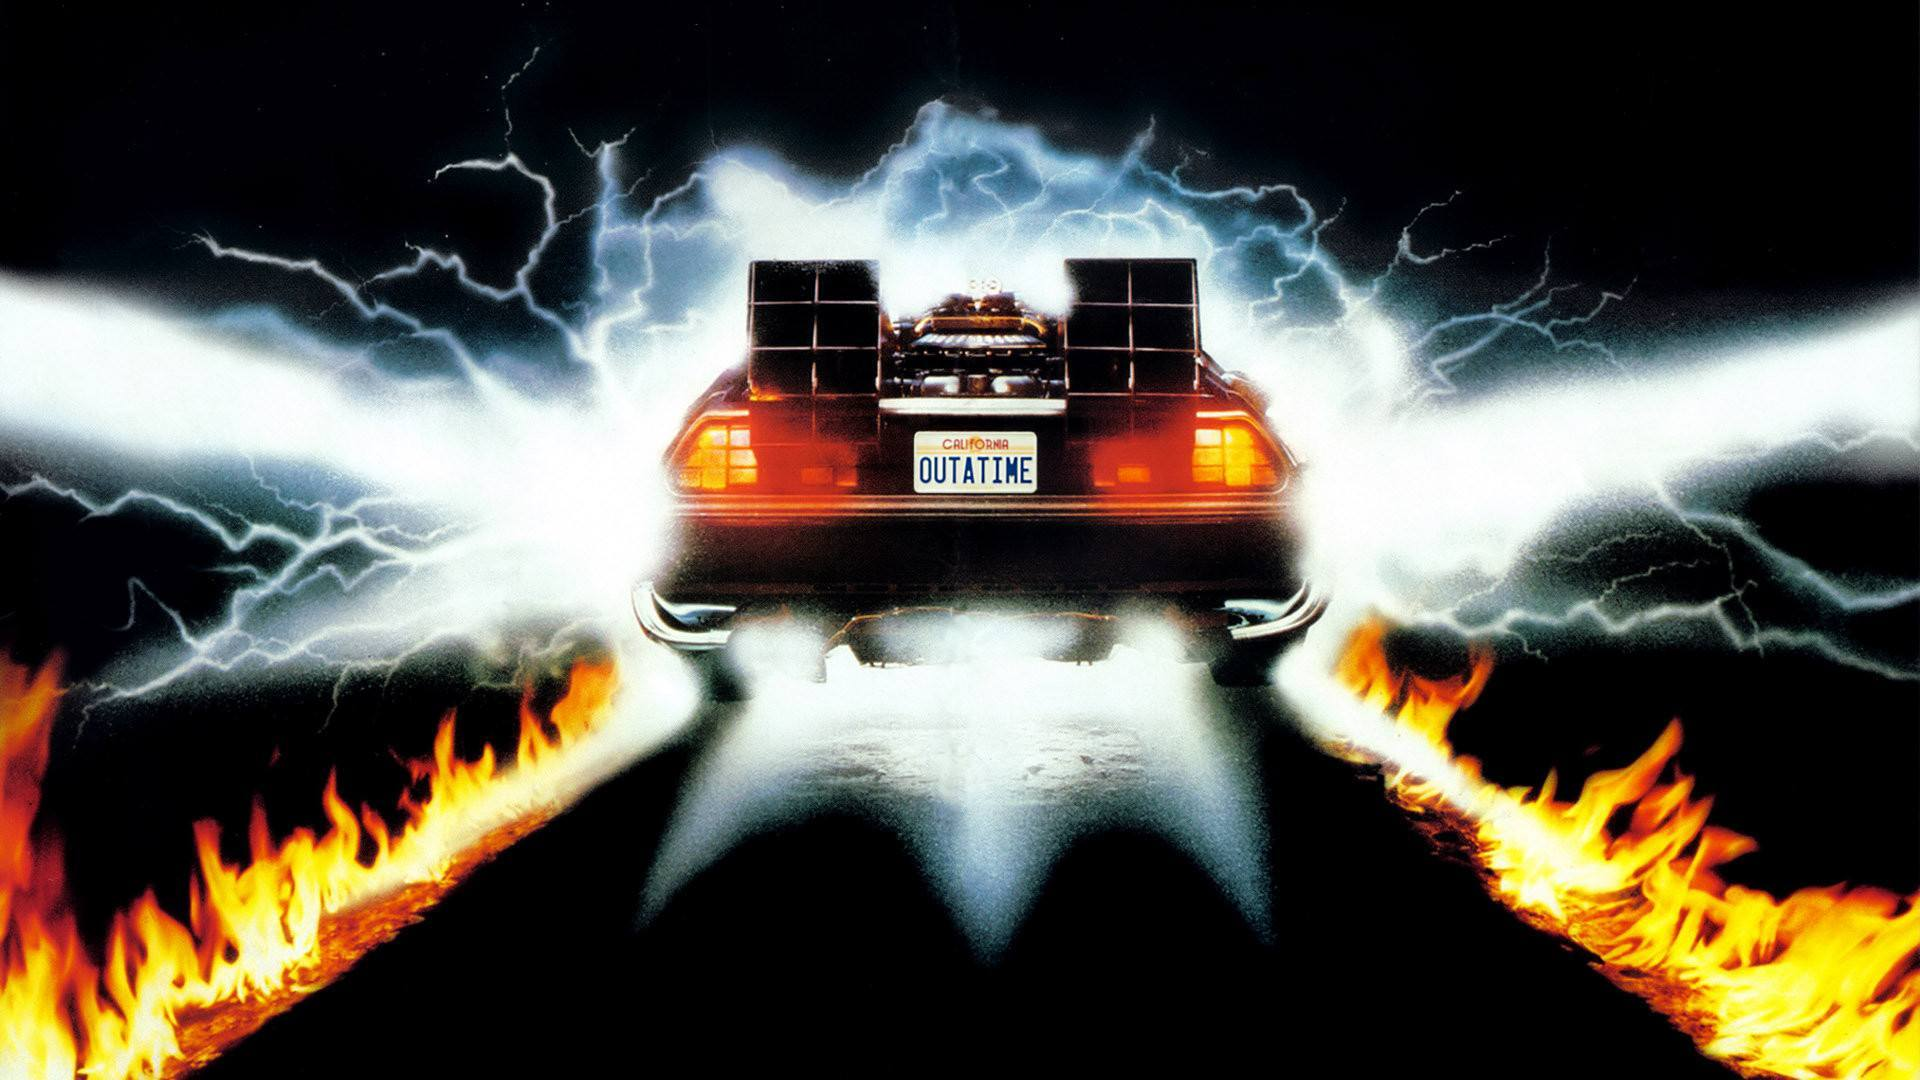 back to the future time travel thoughts images 2015